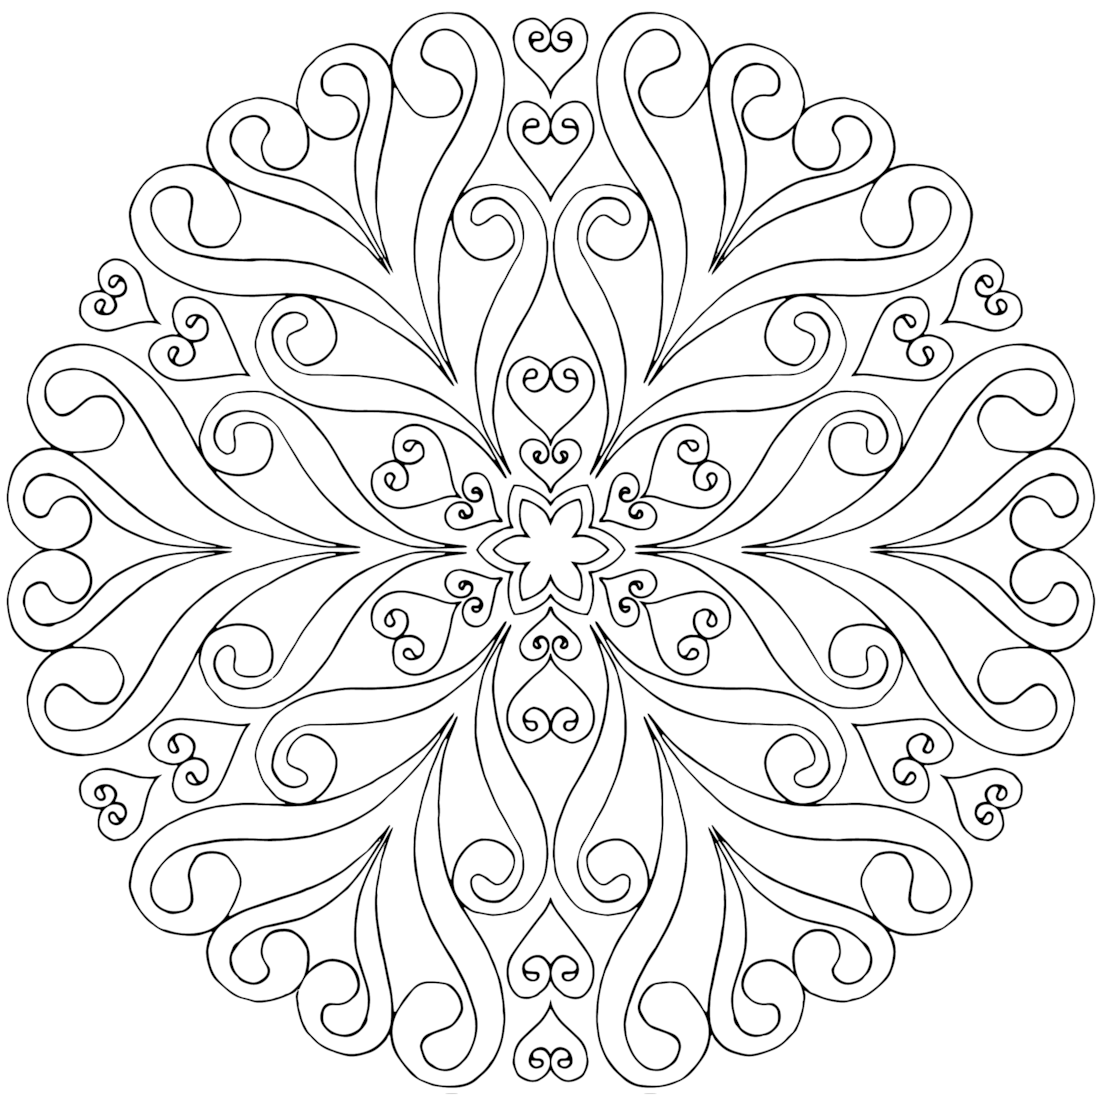 Gallery Photos For Free Mandala Coloring Sheets